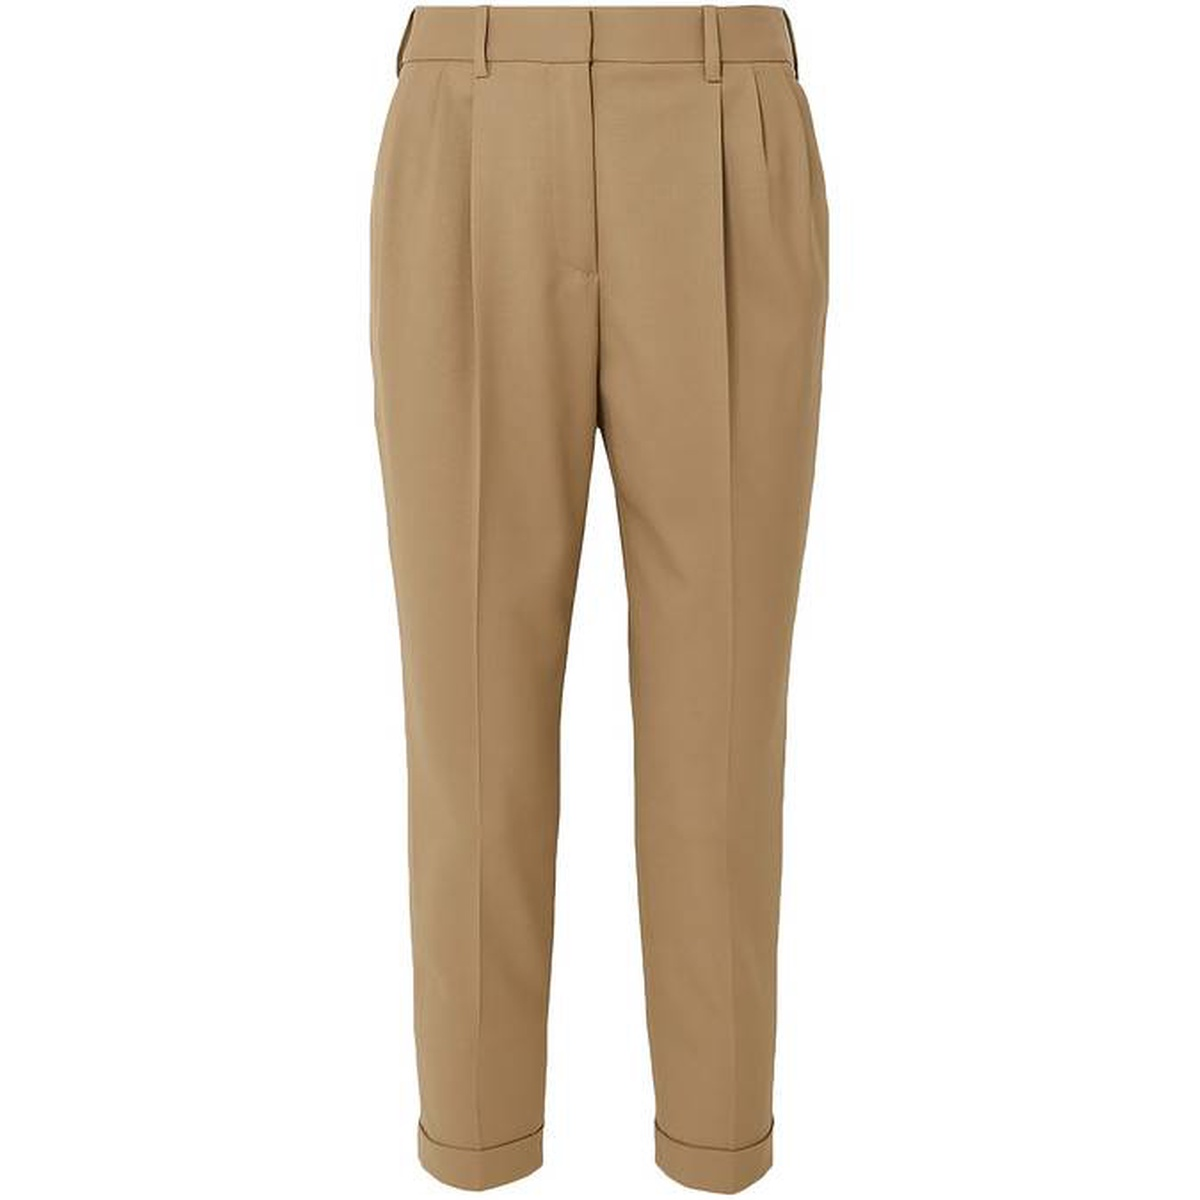 Purchase of Nili Lotan womens Montana wool blended tapered pants 2021 new luxury